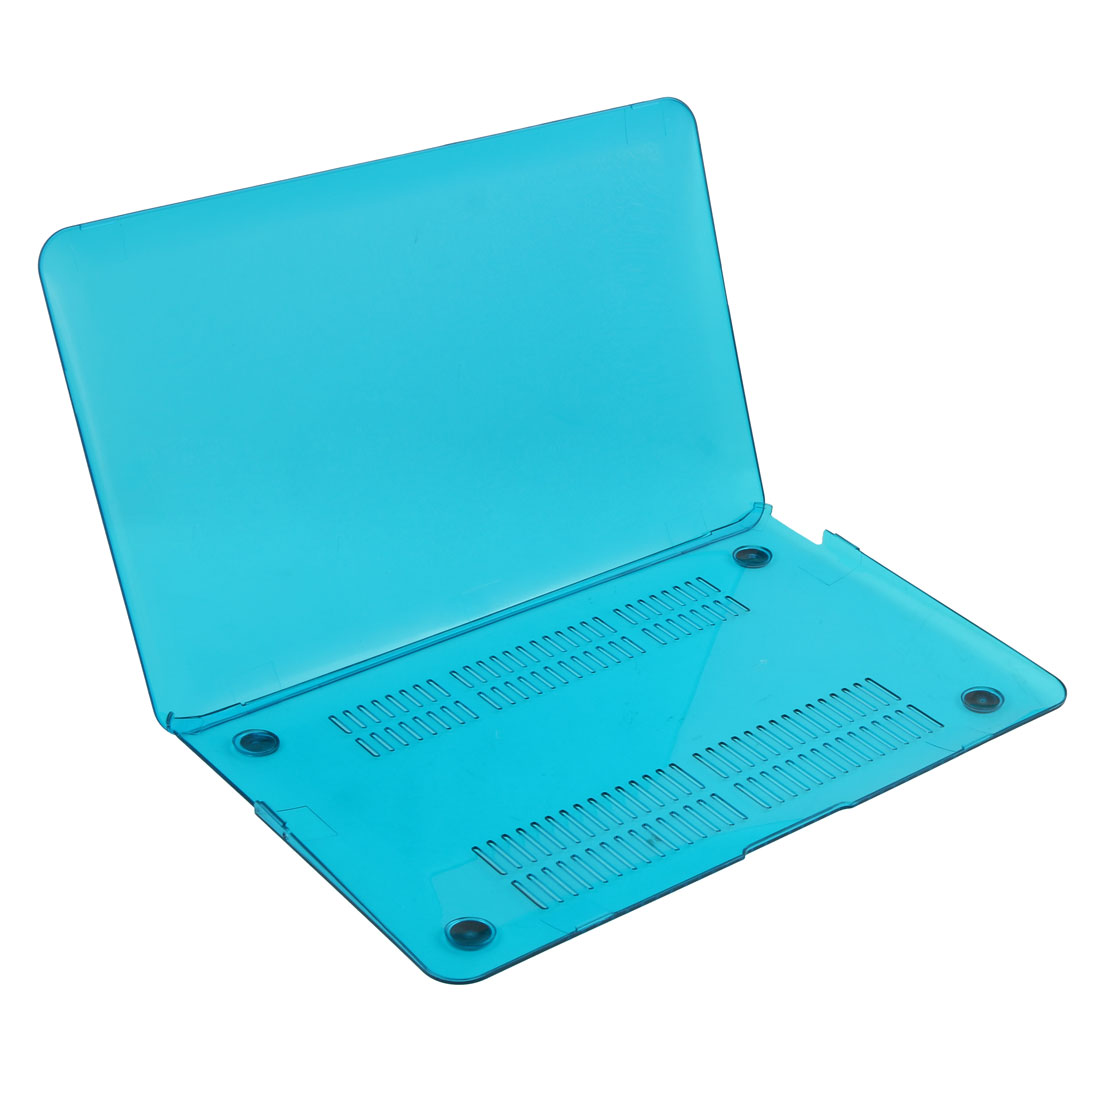 Home Laptop Plastic Anti-dust Shell Hard Case Teal Blue for Macbook Air 11 Inch